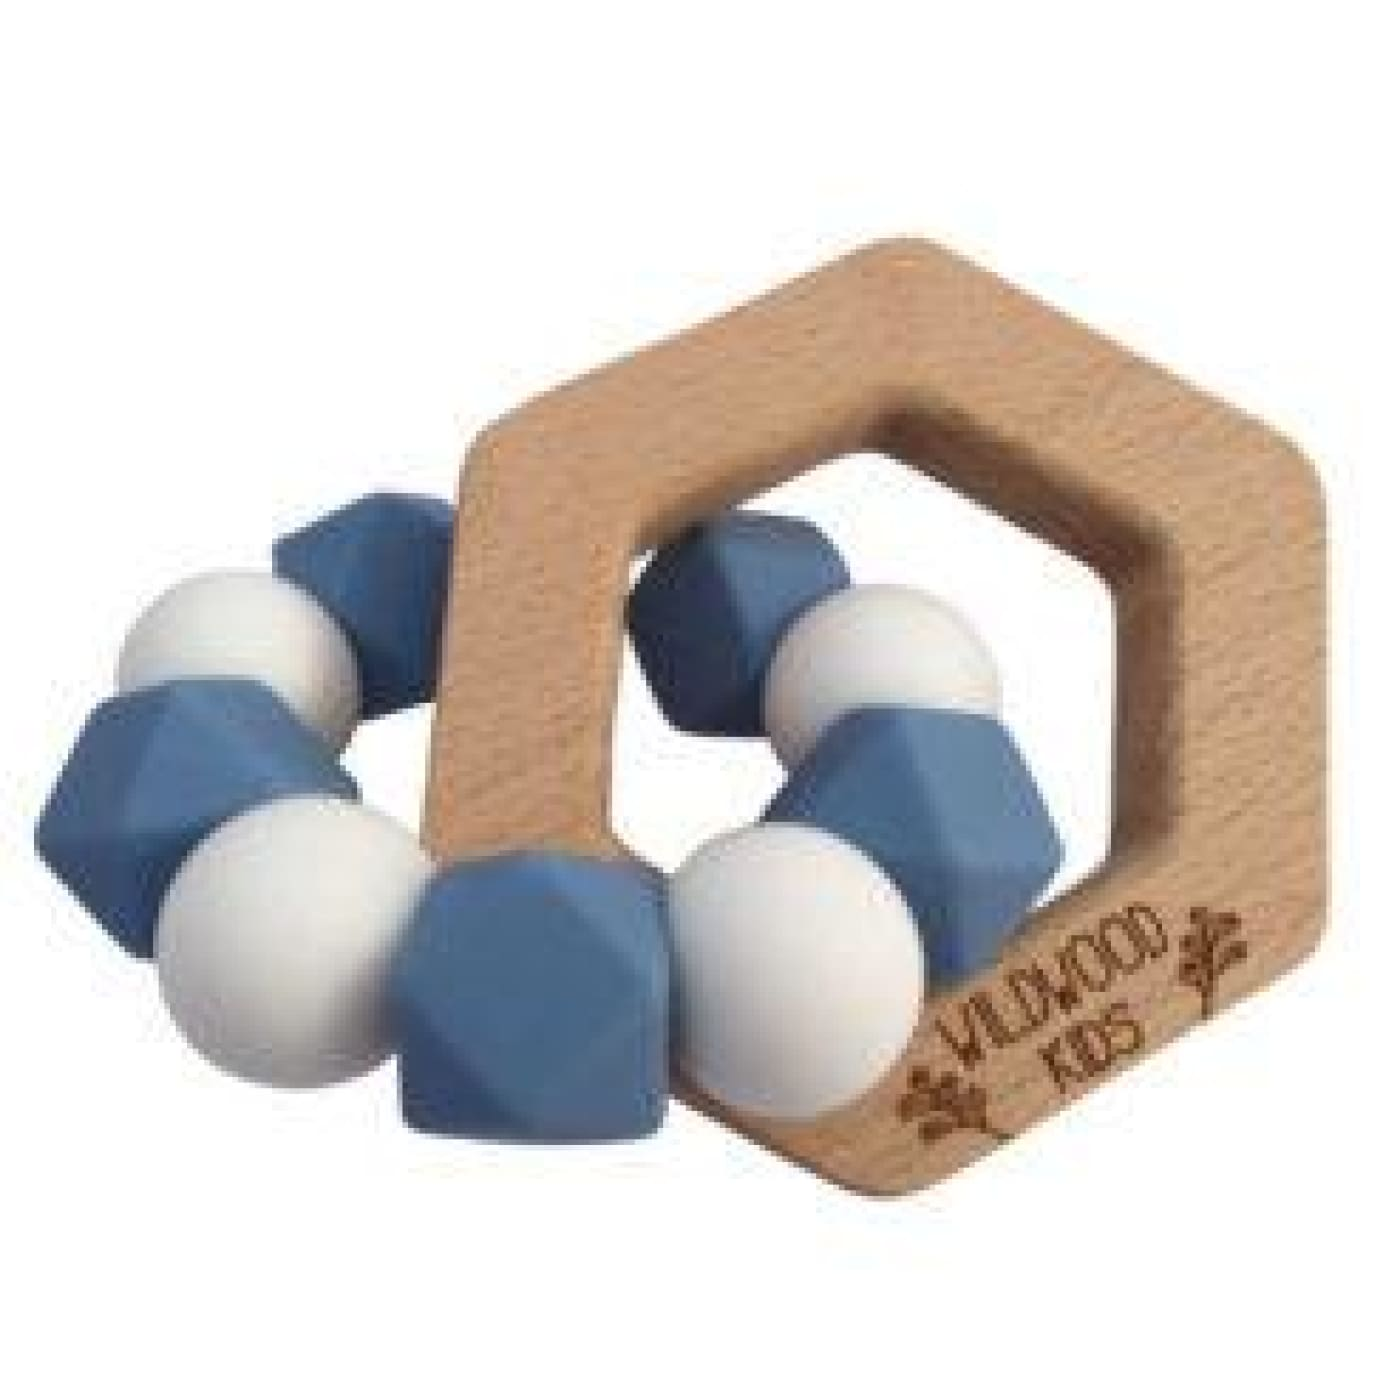 Wildwood Kids Teether - Hexagon Blue/White - NURSING & FEEDING - TEETHERS/TEETHING JEWELLERY